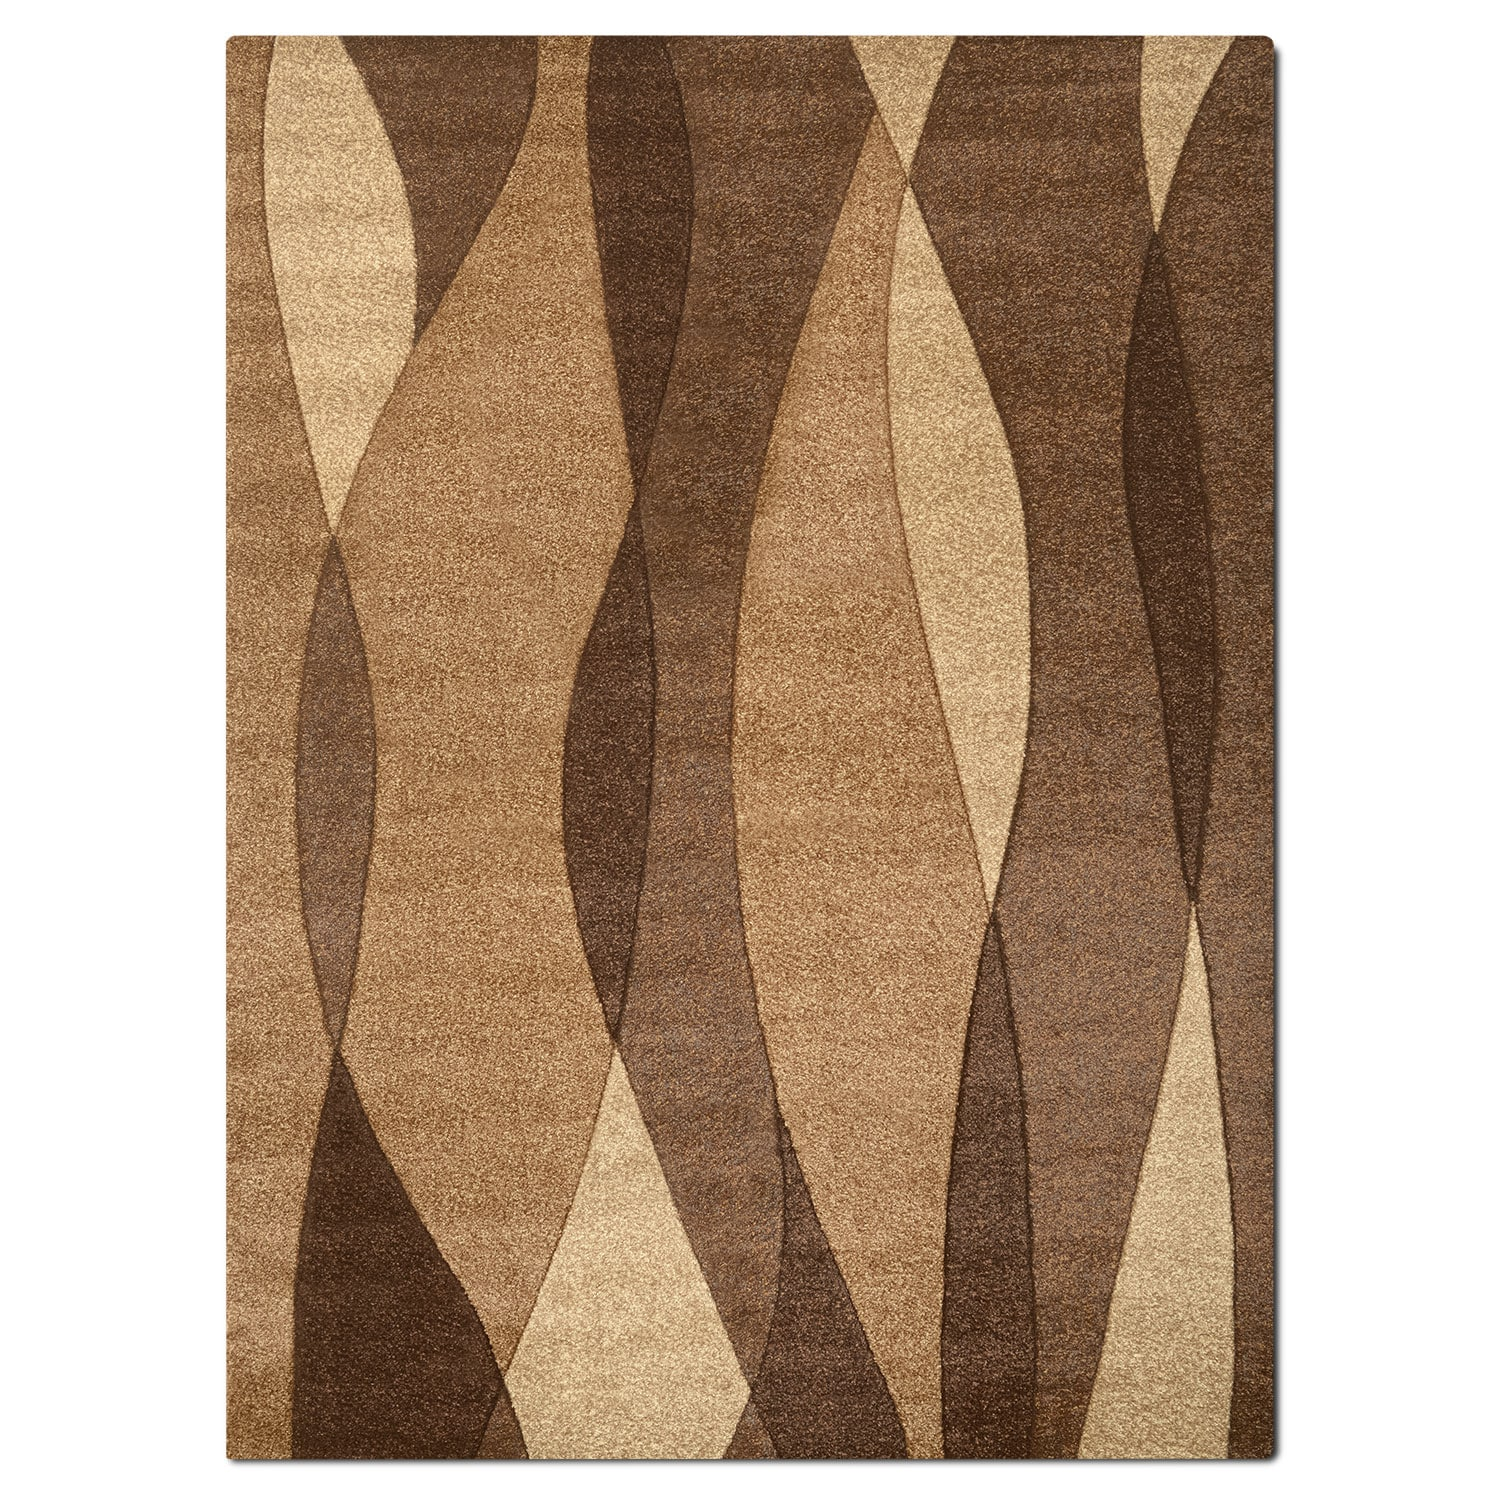 Sedona 5' x 8' Area Rug - Brown